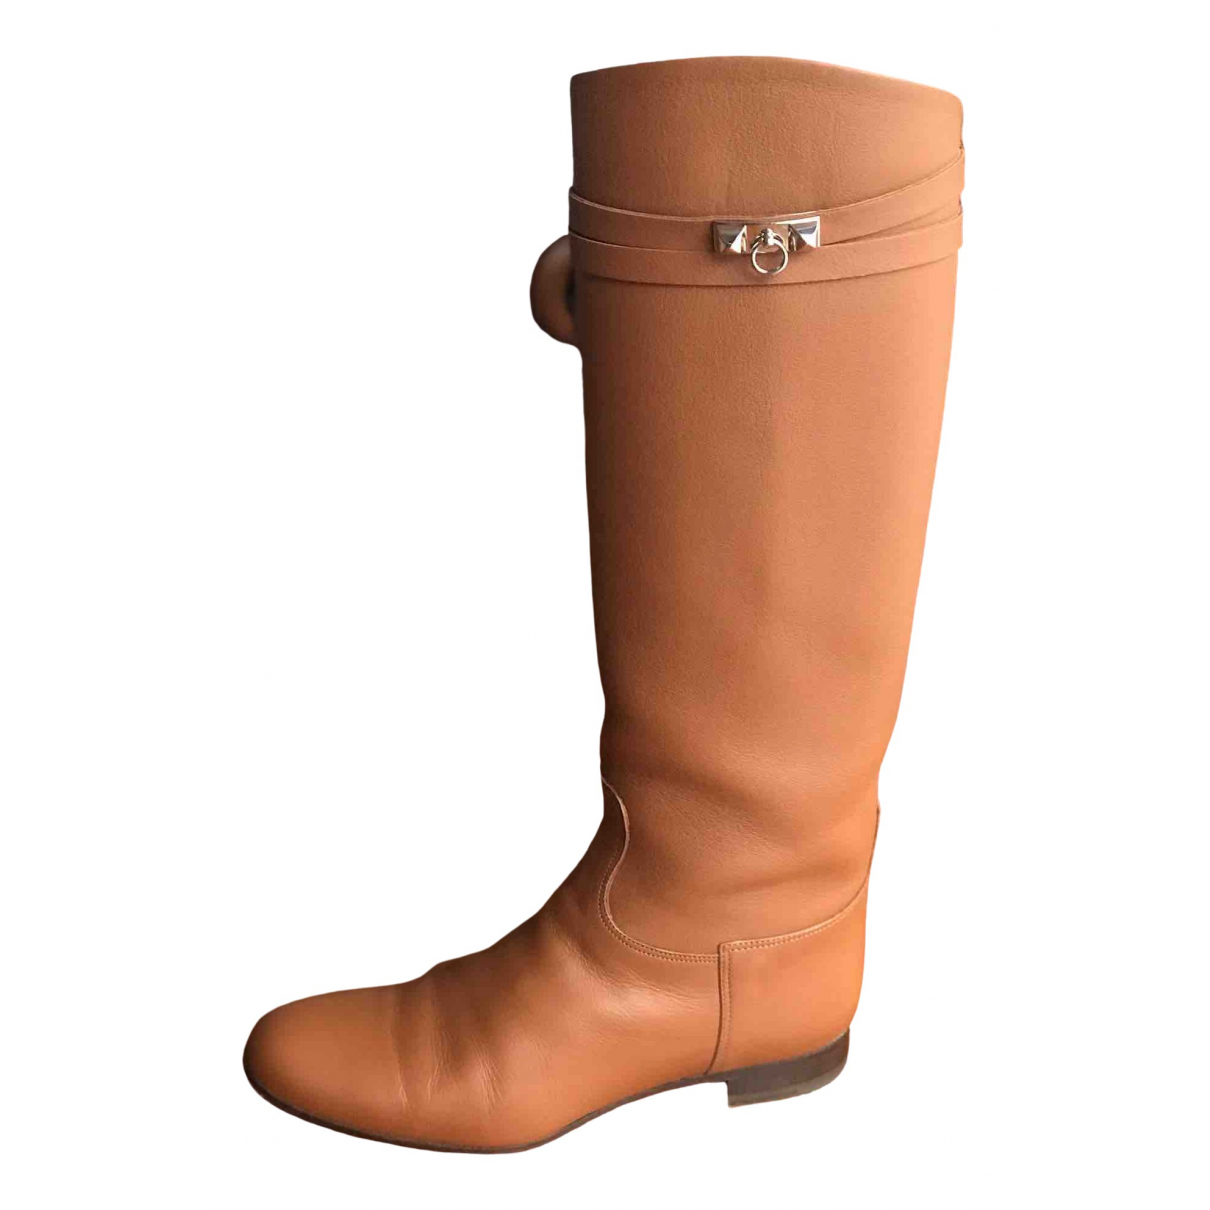 Hermès Jumping Brown Leather Boots for Women 37 EU